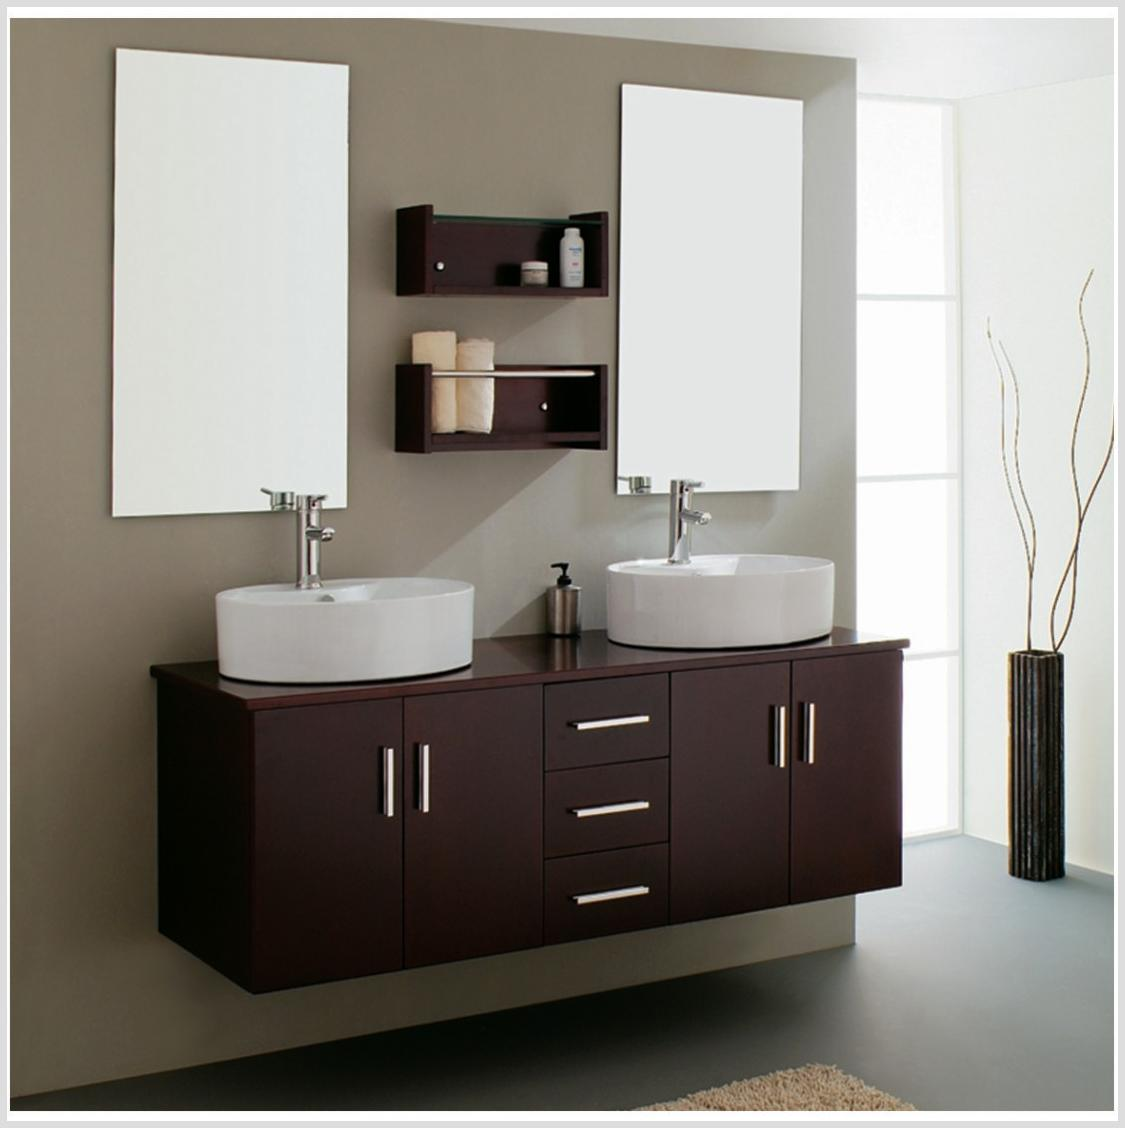 Top Bathroom Vanities and Cabinets 1125 x 1128 · 74 kB · jpeg